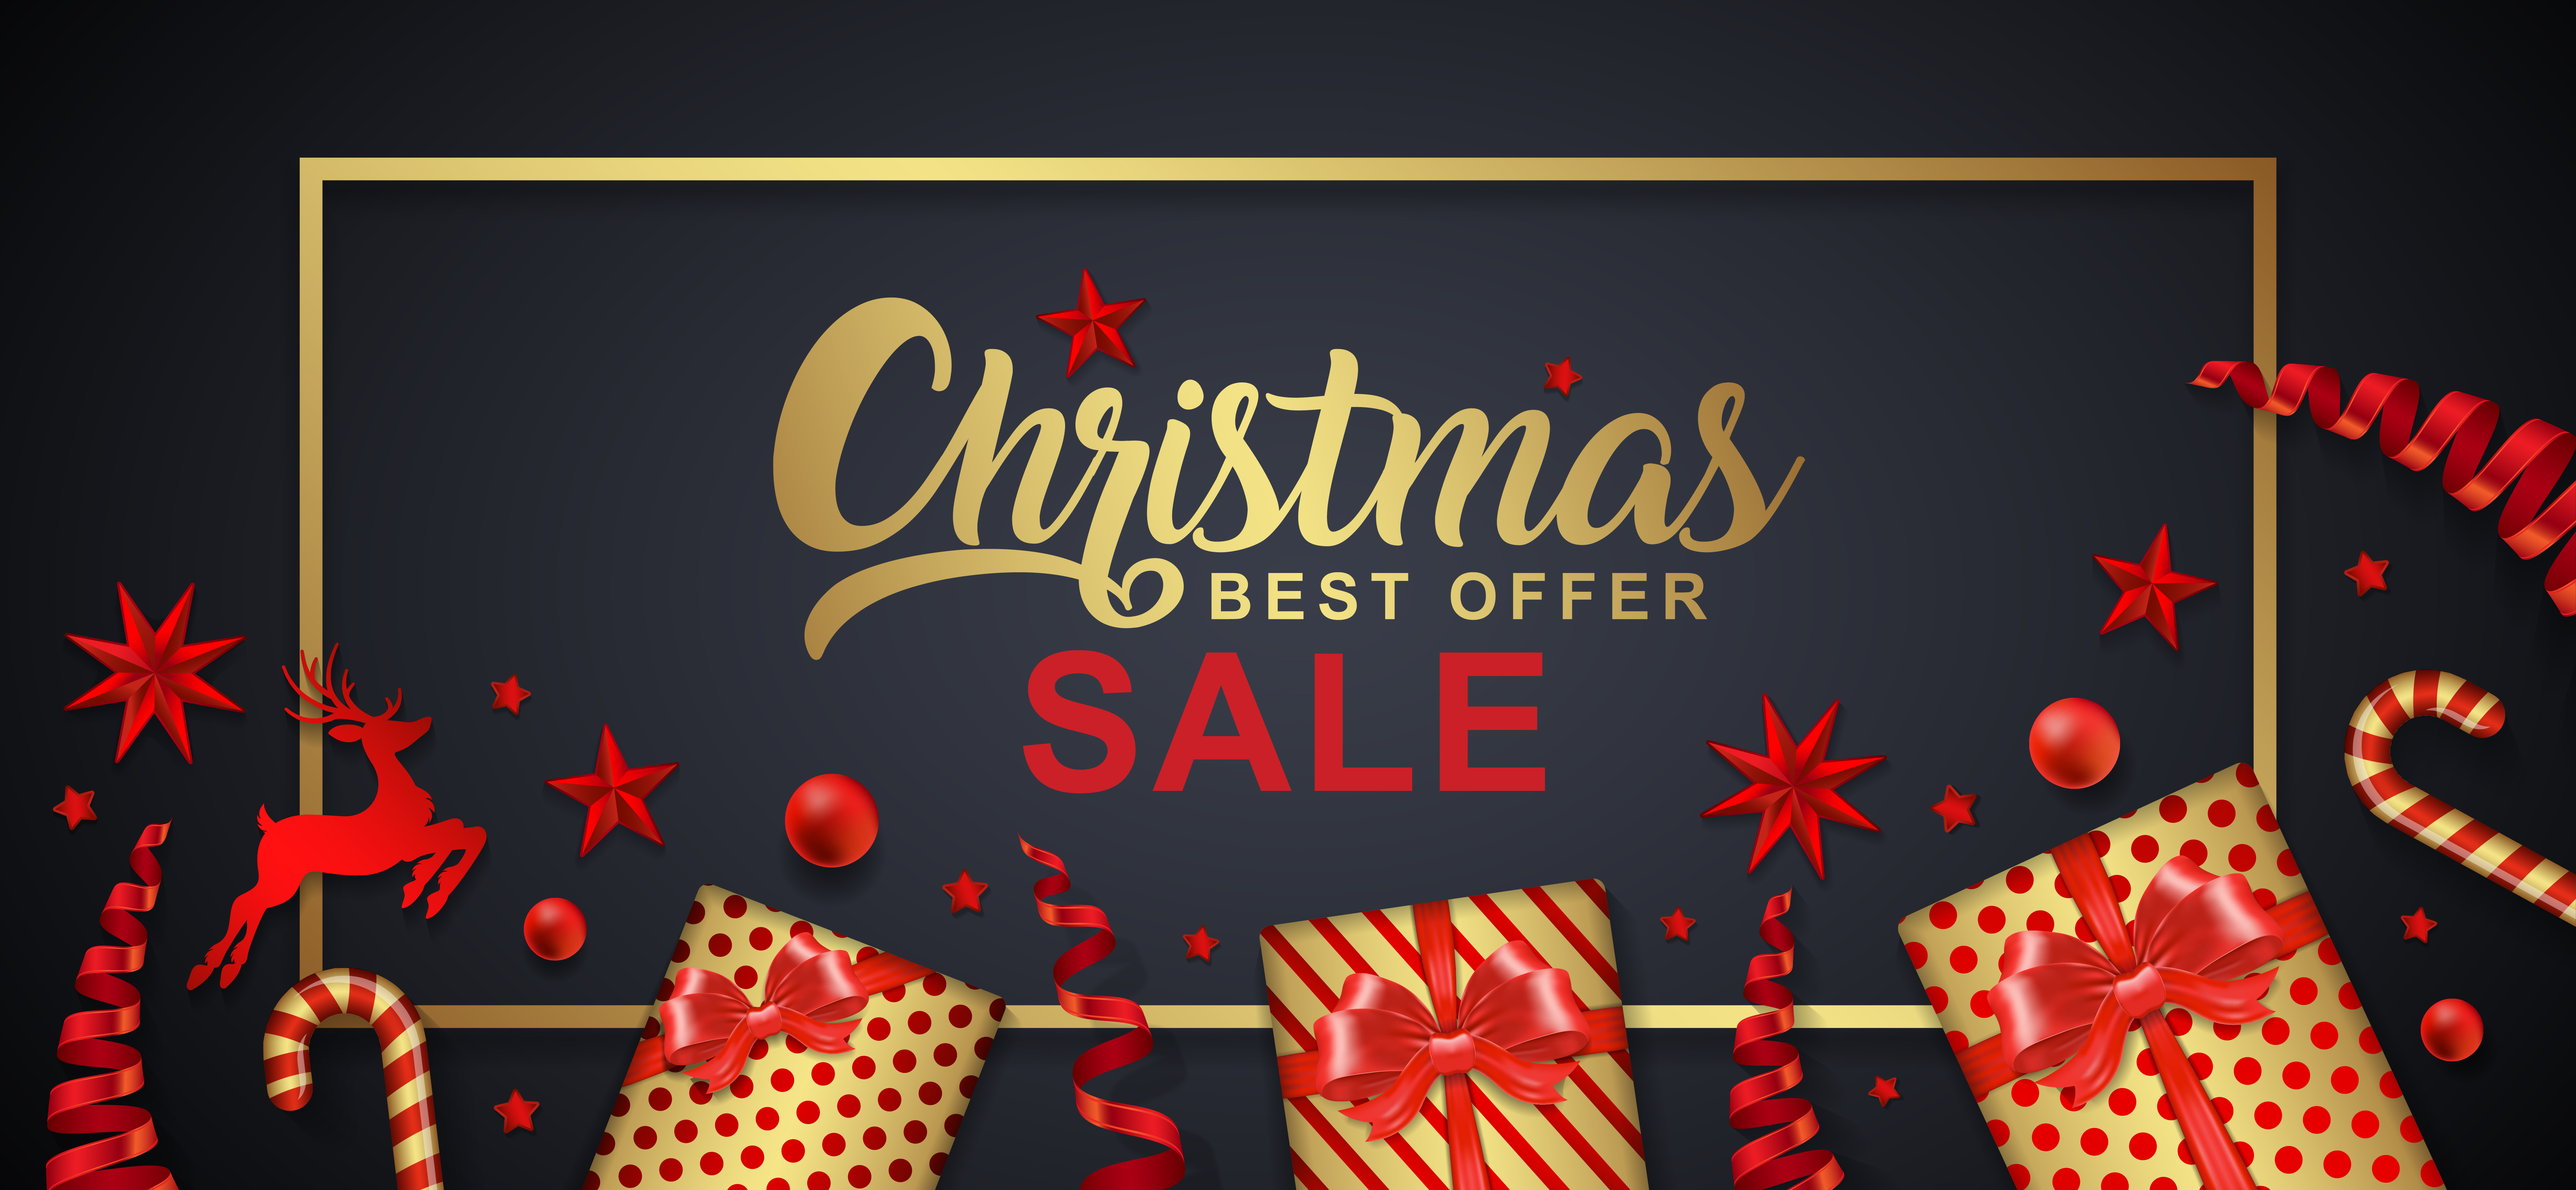 CHRISTMAS SALES GOING ON NOW!!!